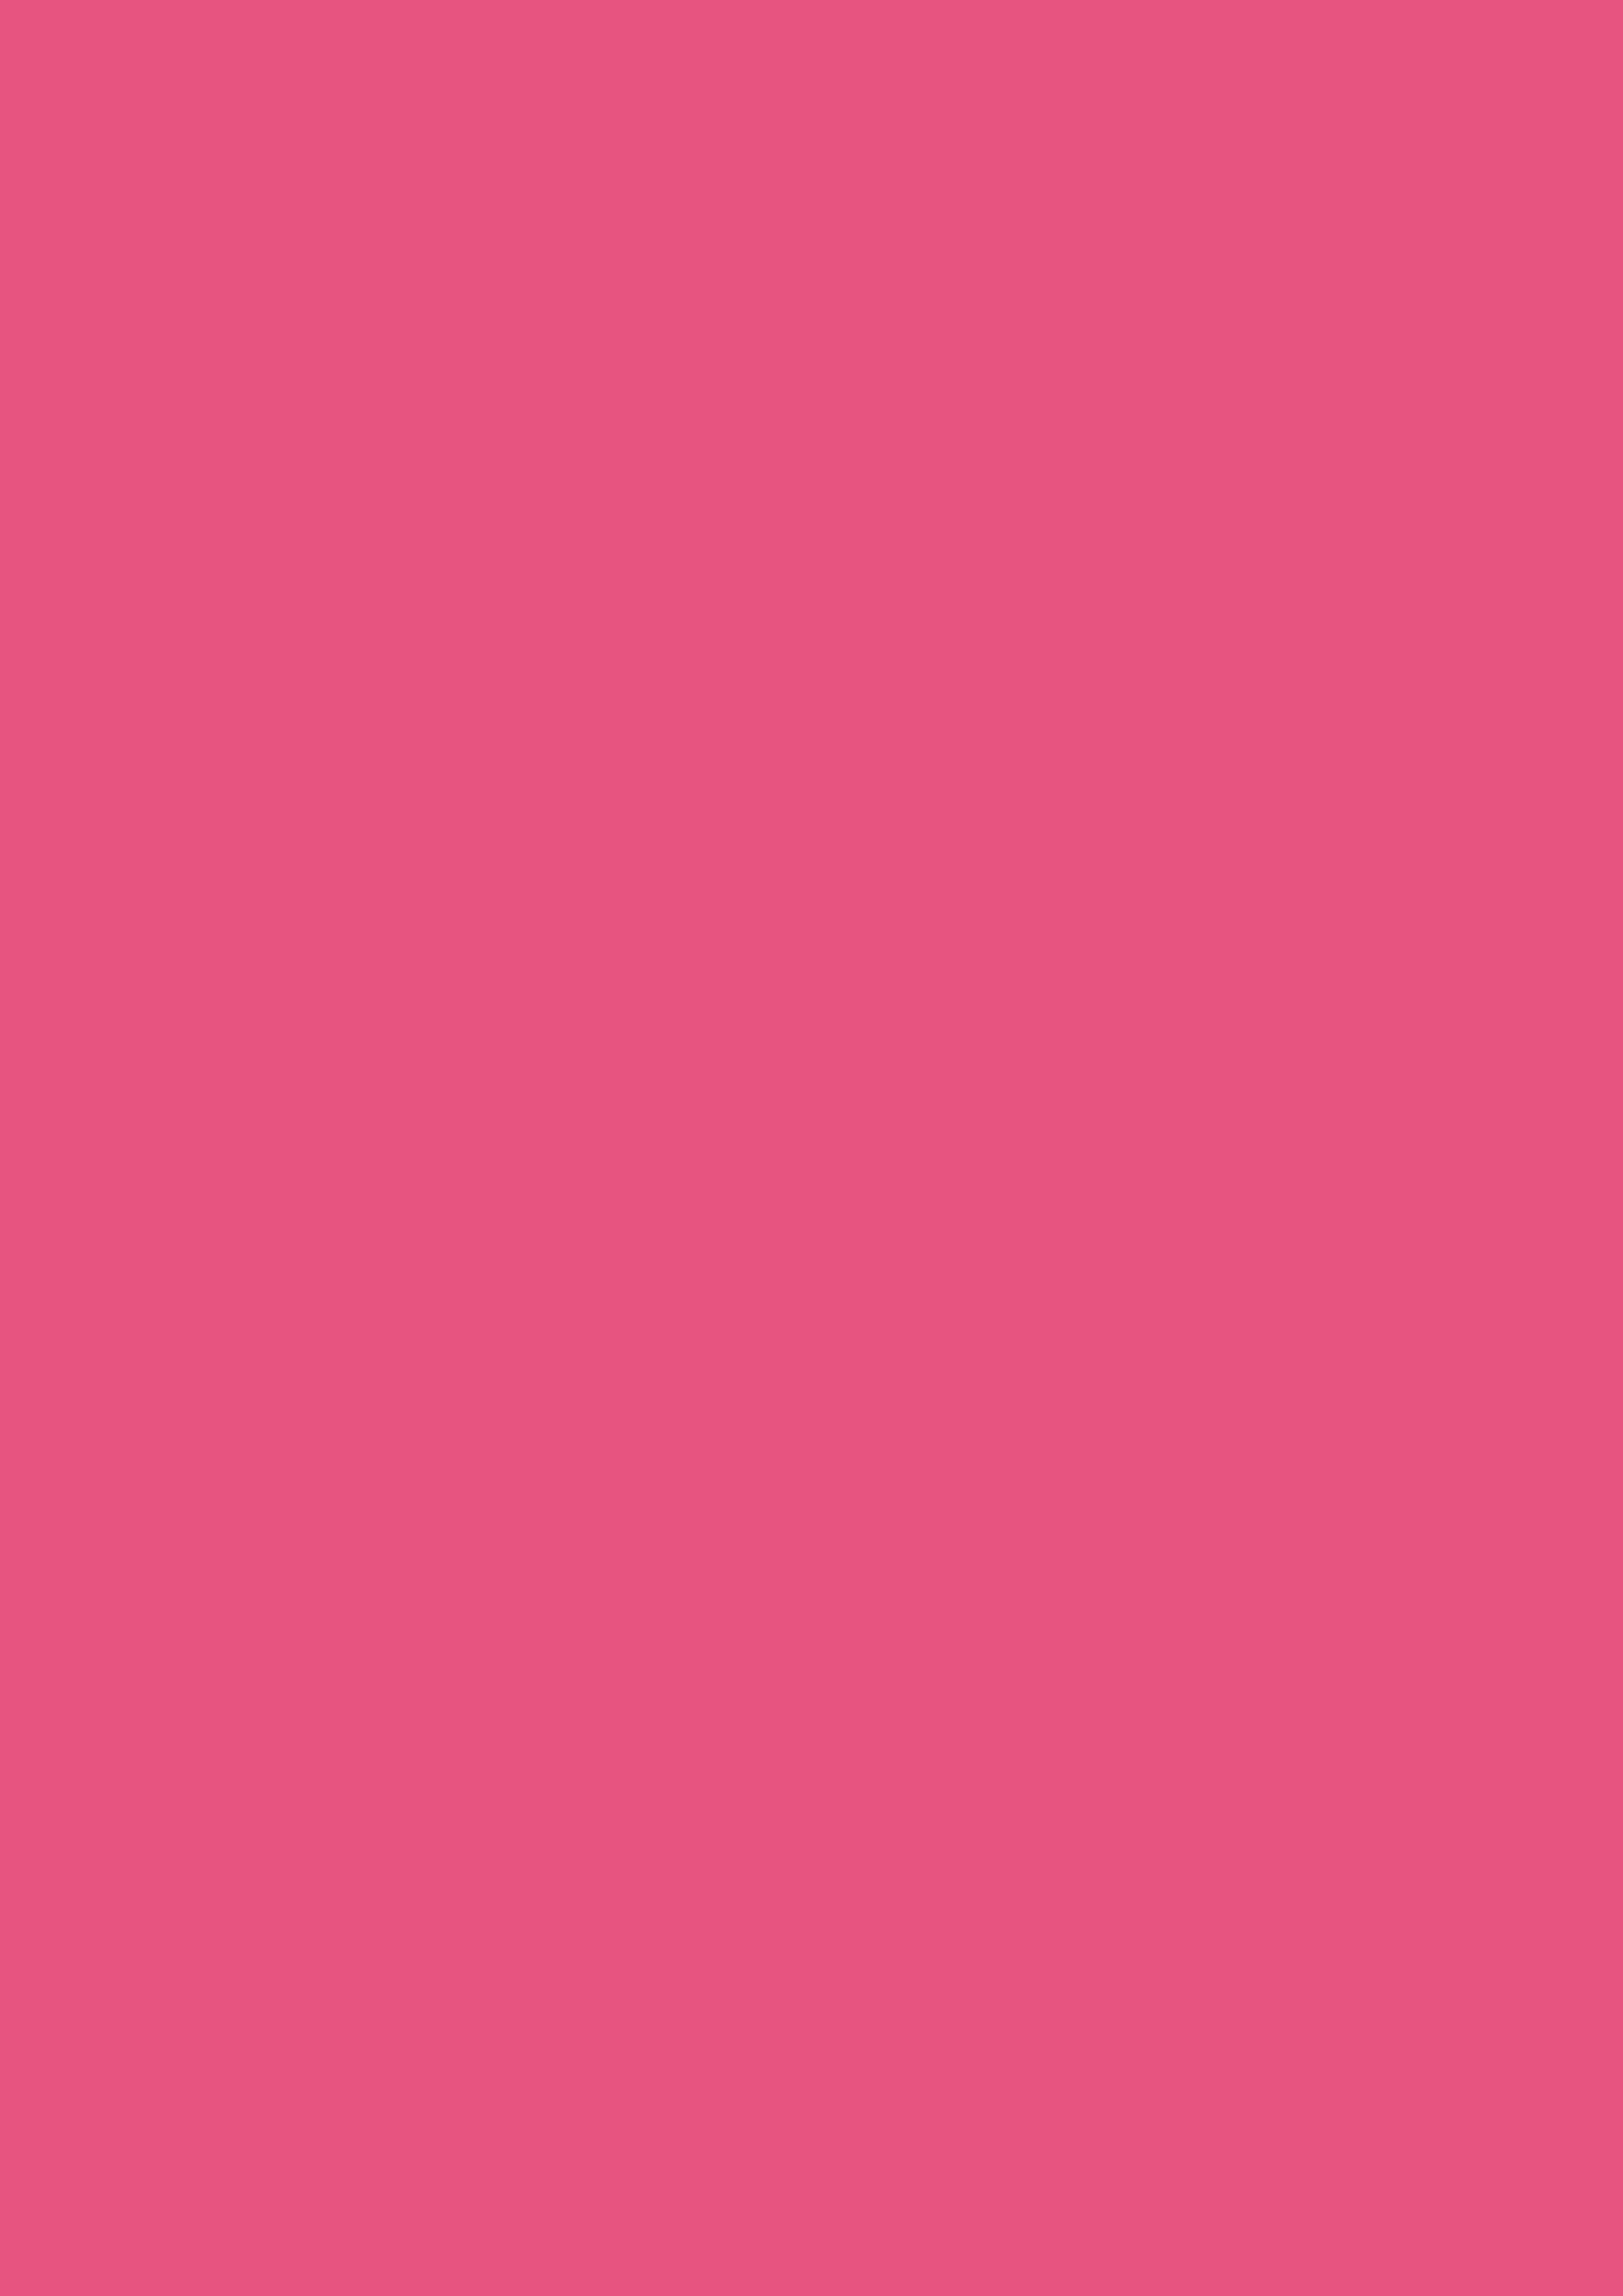 2480x3508 Dark Pink Solid Color Background